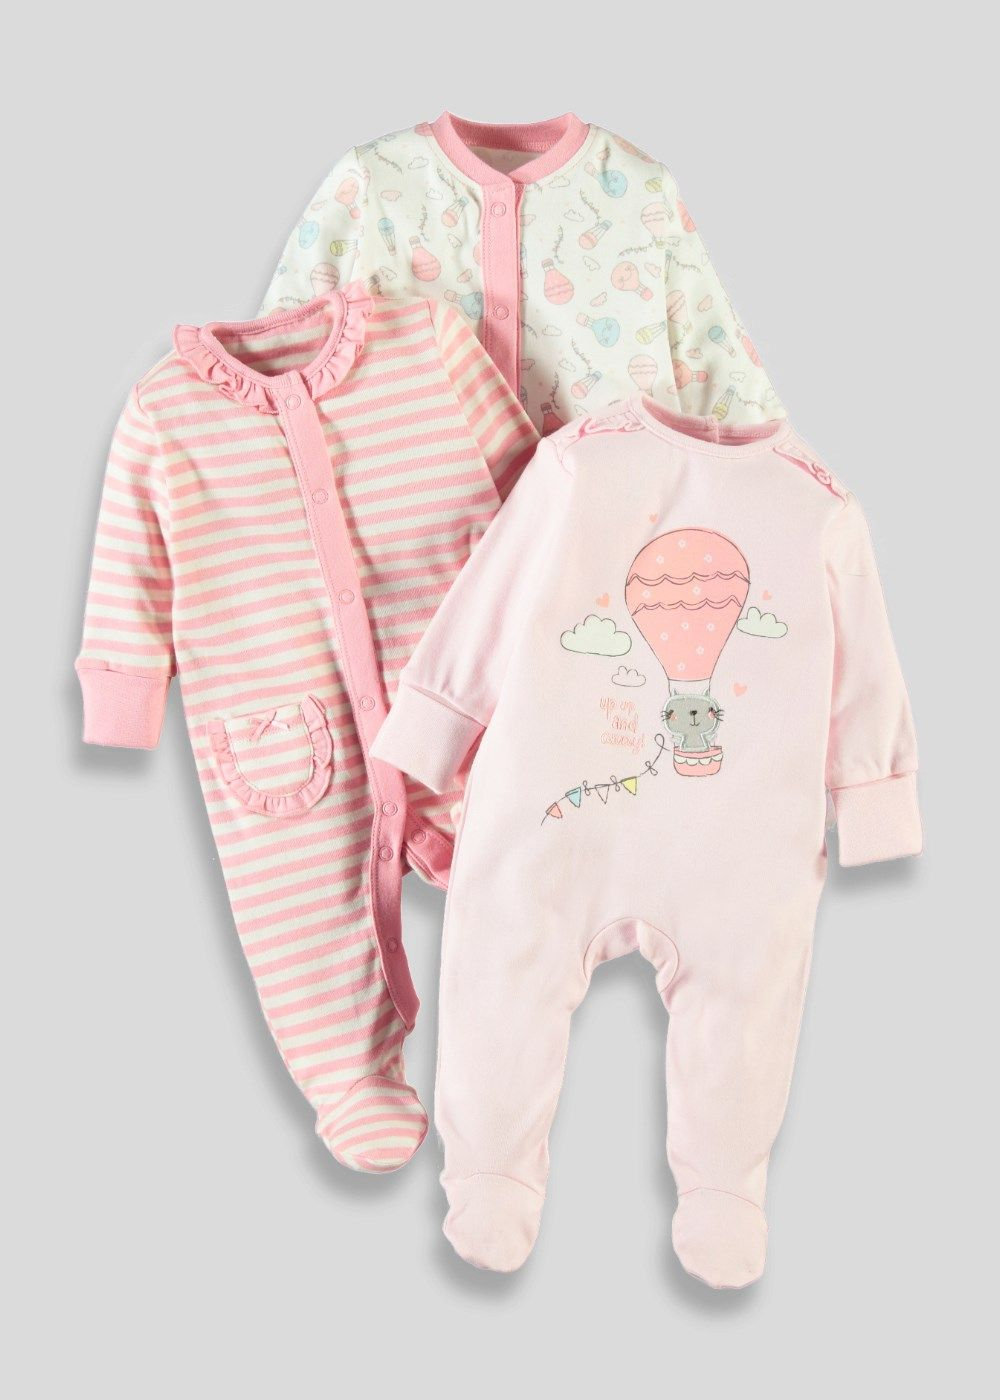 4cd21eee2 Girls 3 Pack Sleepsuits (Tiny Baby-23mths) - Matalan ...